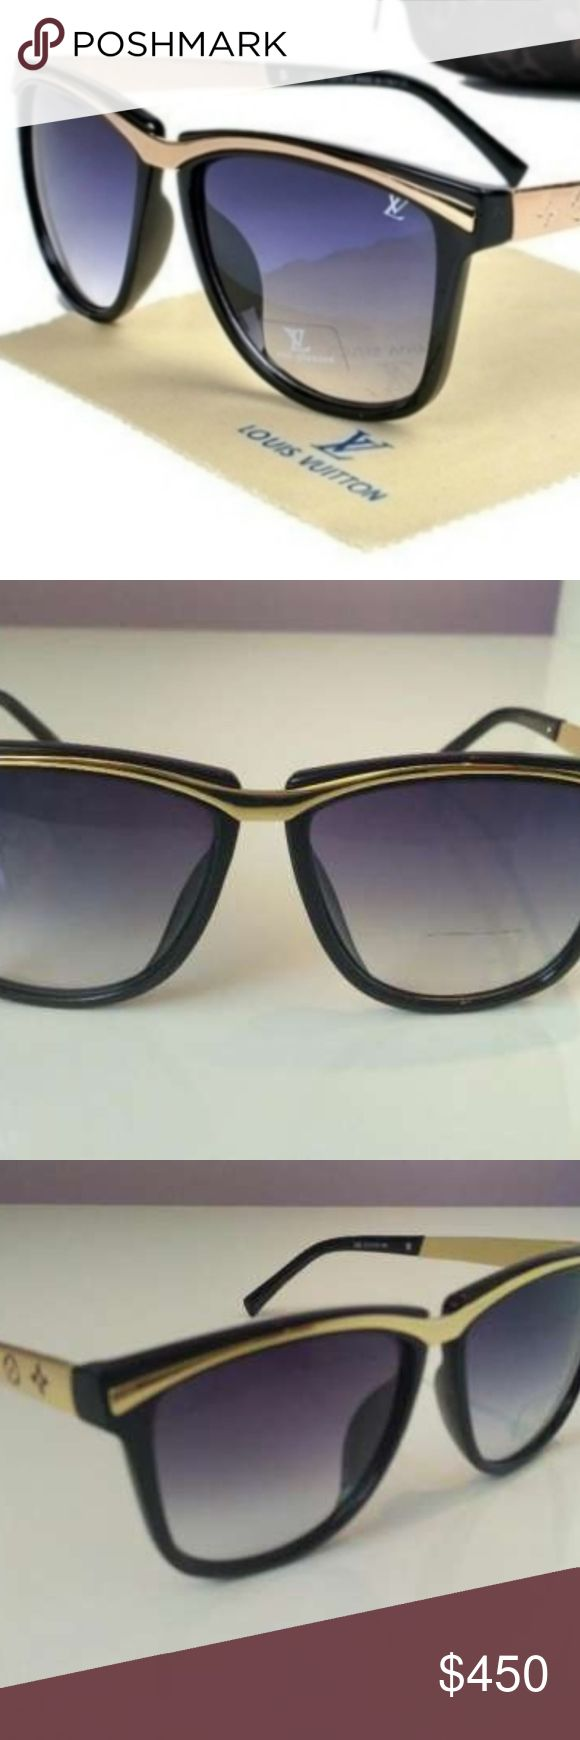 NEW Louis Vuitton 265 Millionaire Gold Sunglasses Louis Vuitton Model: LVmillionaire Gender: UNISEX Model Code: Louis Vuitton 265 Color - Black / Gold Color Lens Gray/Black UV protection 400  PRODUCT DIMENSIONS: Width 139 MM Bridge 15 MM Lens Height 46 MM Lens Width 55 MM Arm Length 135 mm  Serial #: 265 57-16-142 Louis Vuitton Accessories Sunglasses